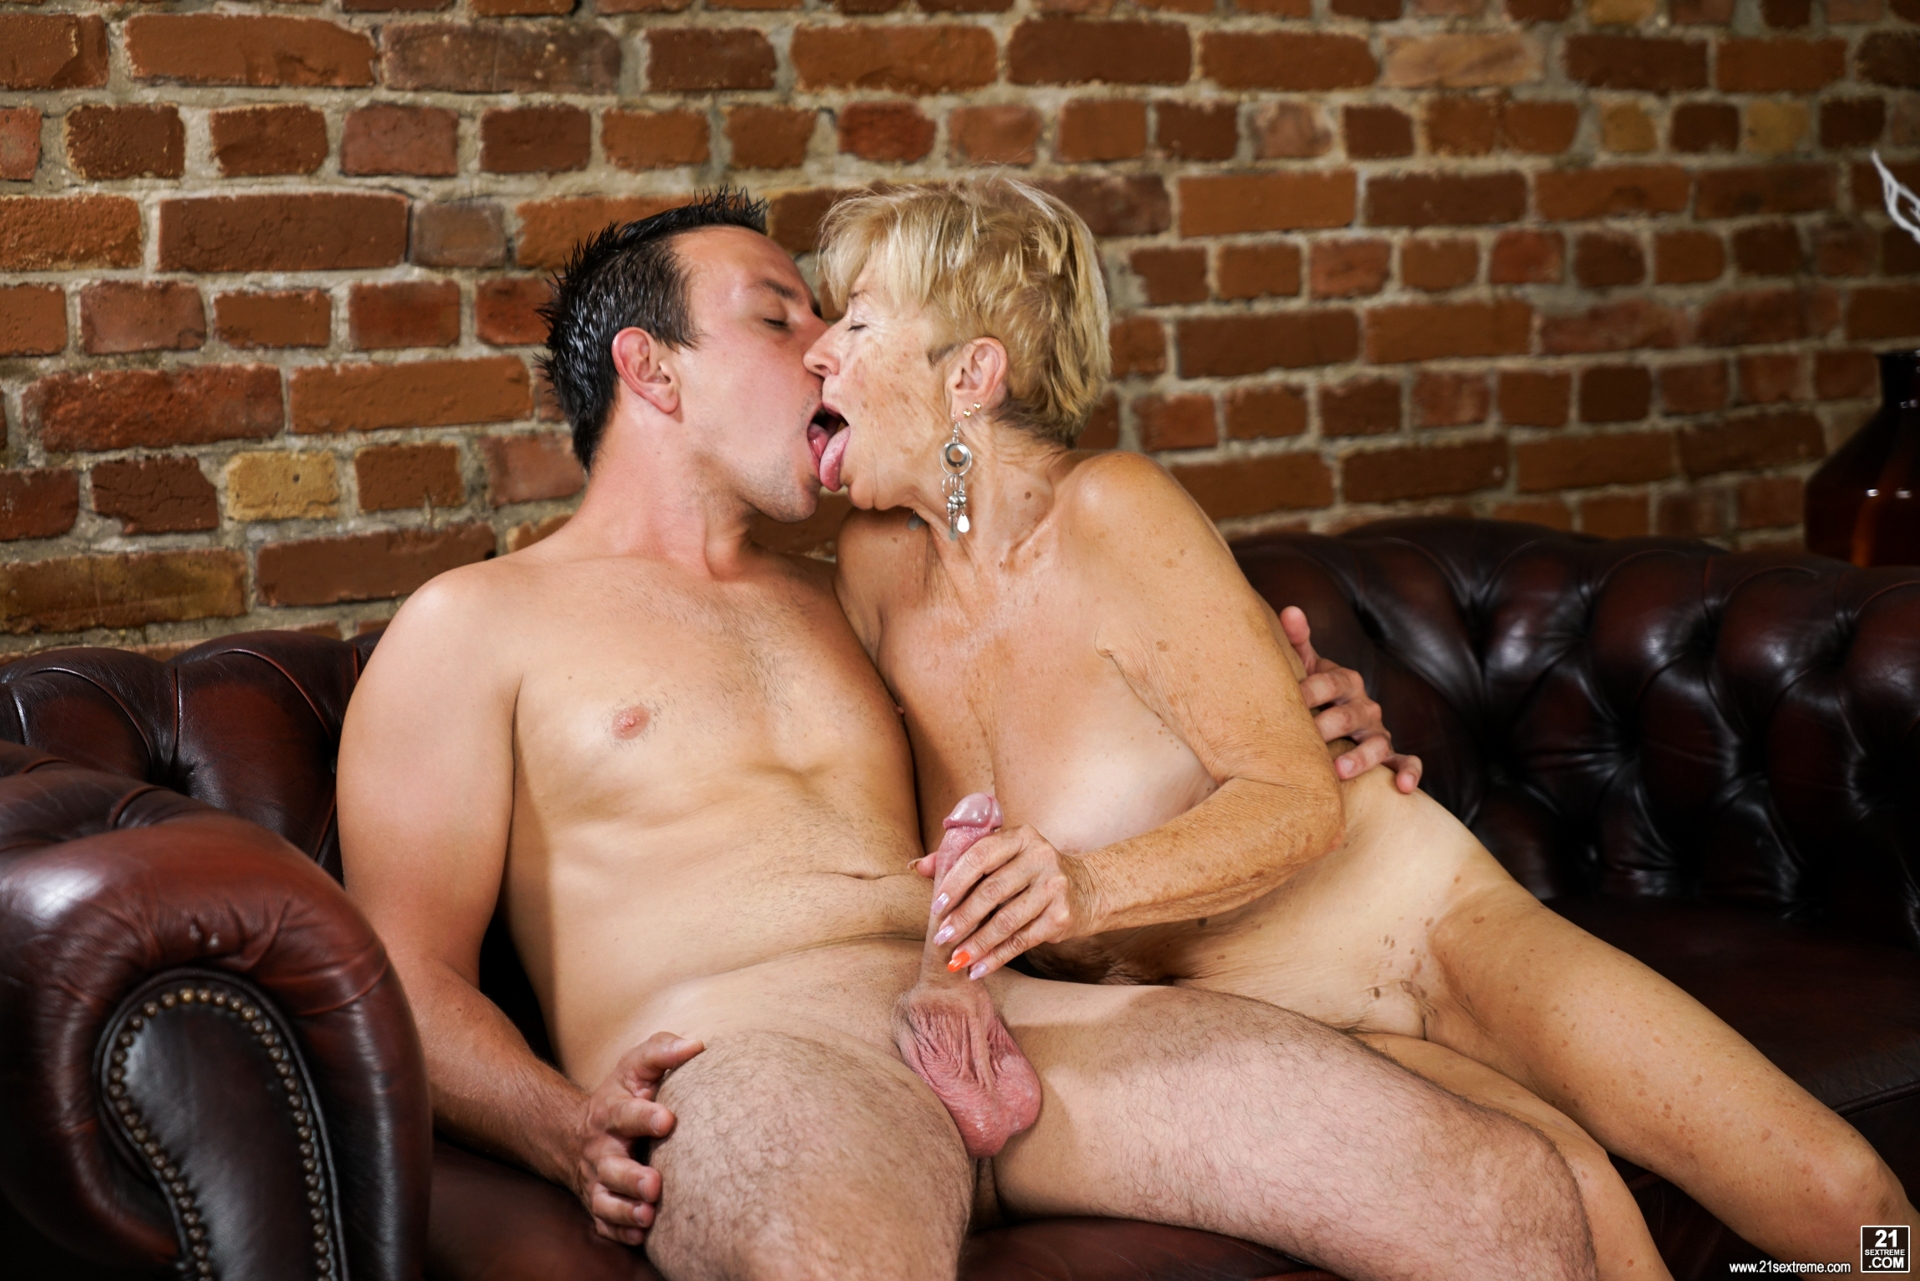 finally his deepthroat lust gets satisfied by 75 years old granny bertha from holland #1